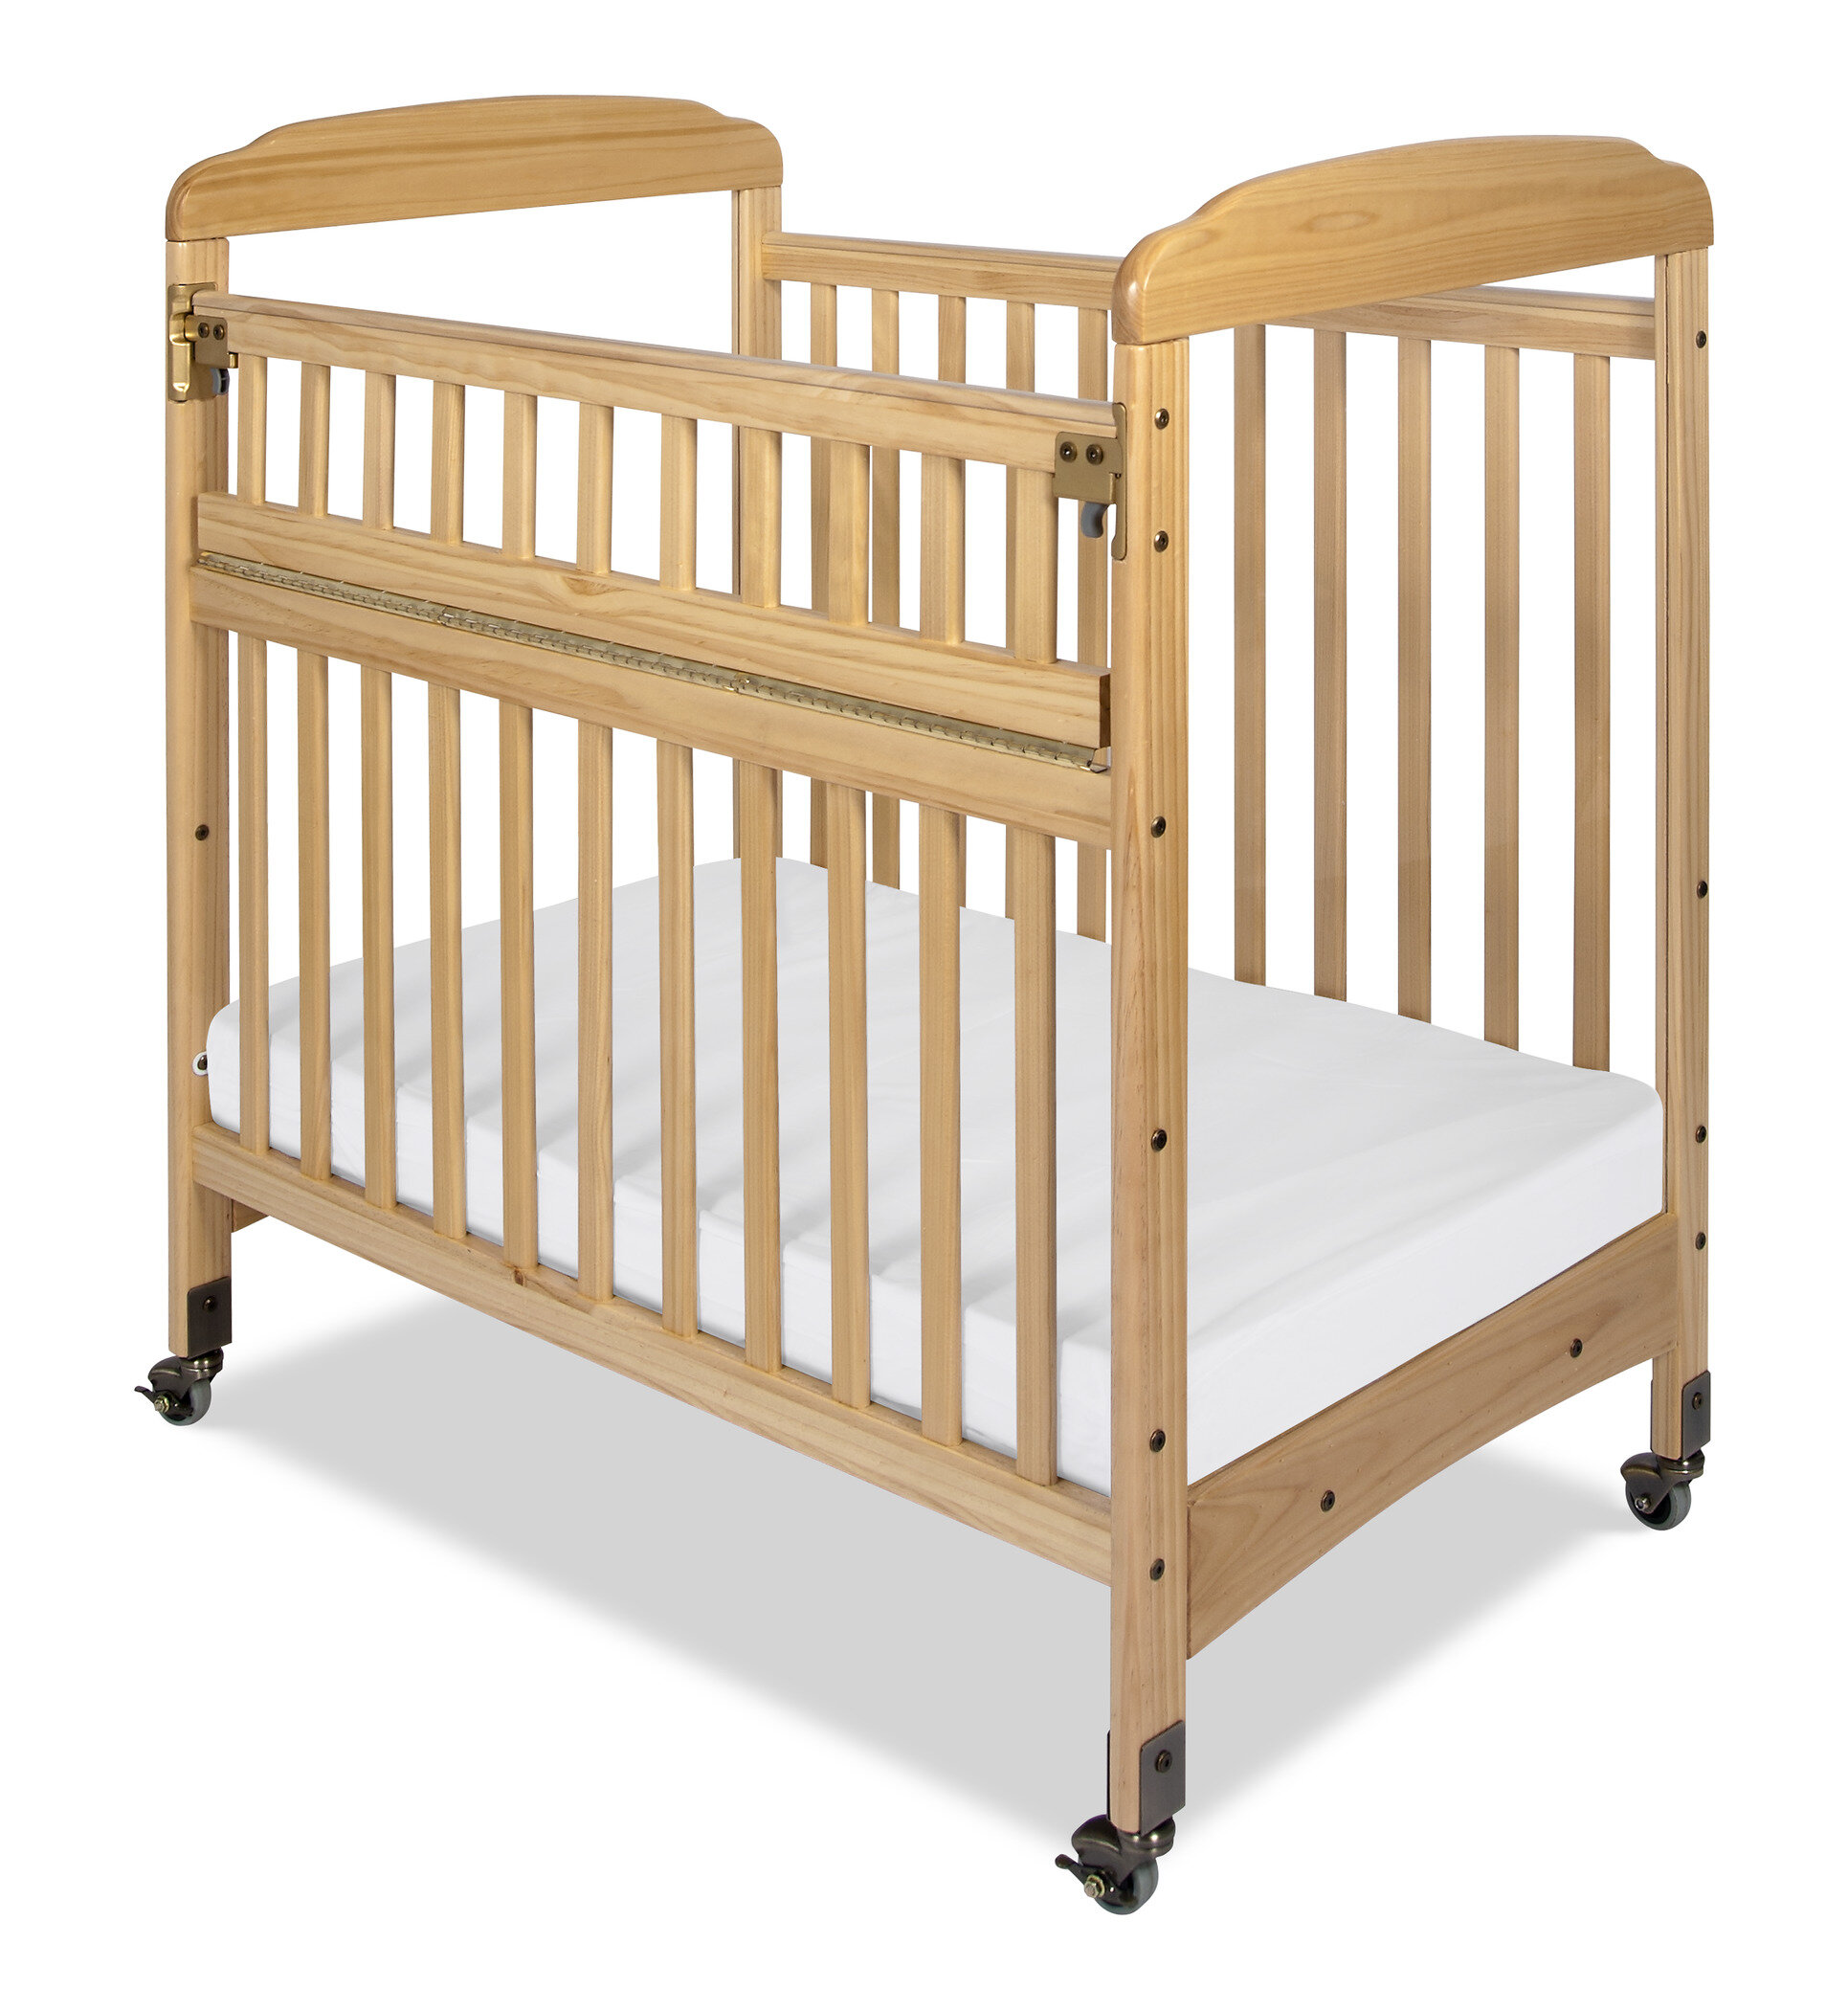 Foundations Serenity Safereach Compact Mini Portable Crib With Mattress Reviews Wayfair